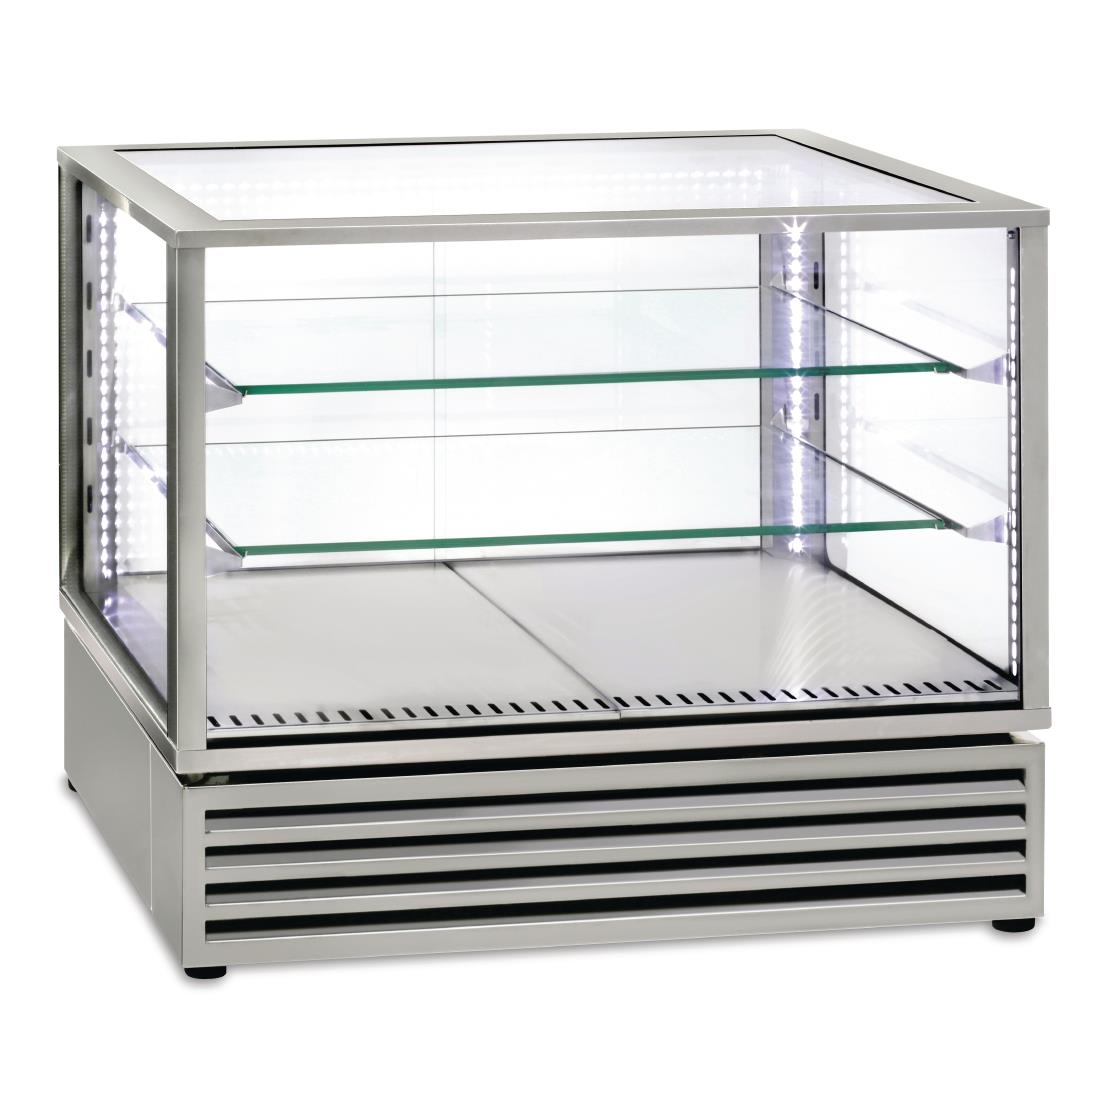 Roller Grill Countertop Display Fridge 2/1GN Stainless Steel CD800 I